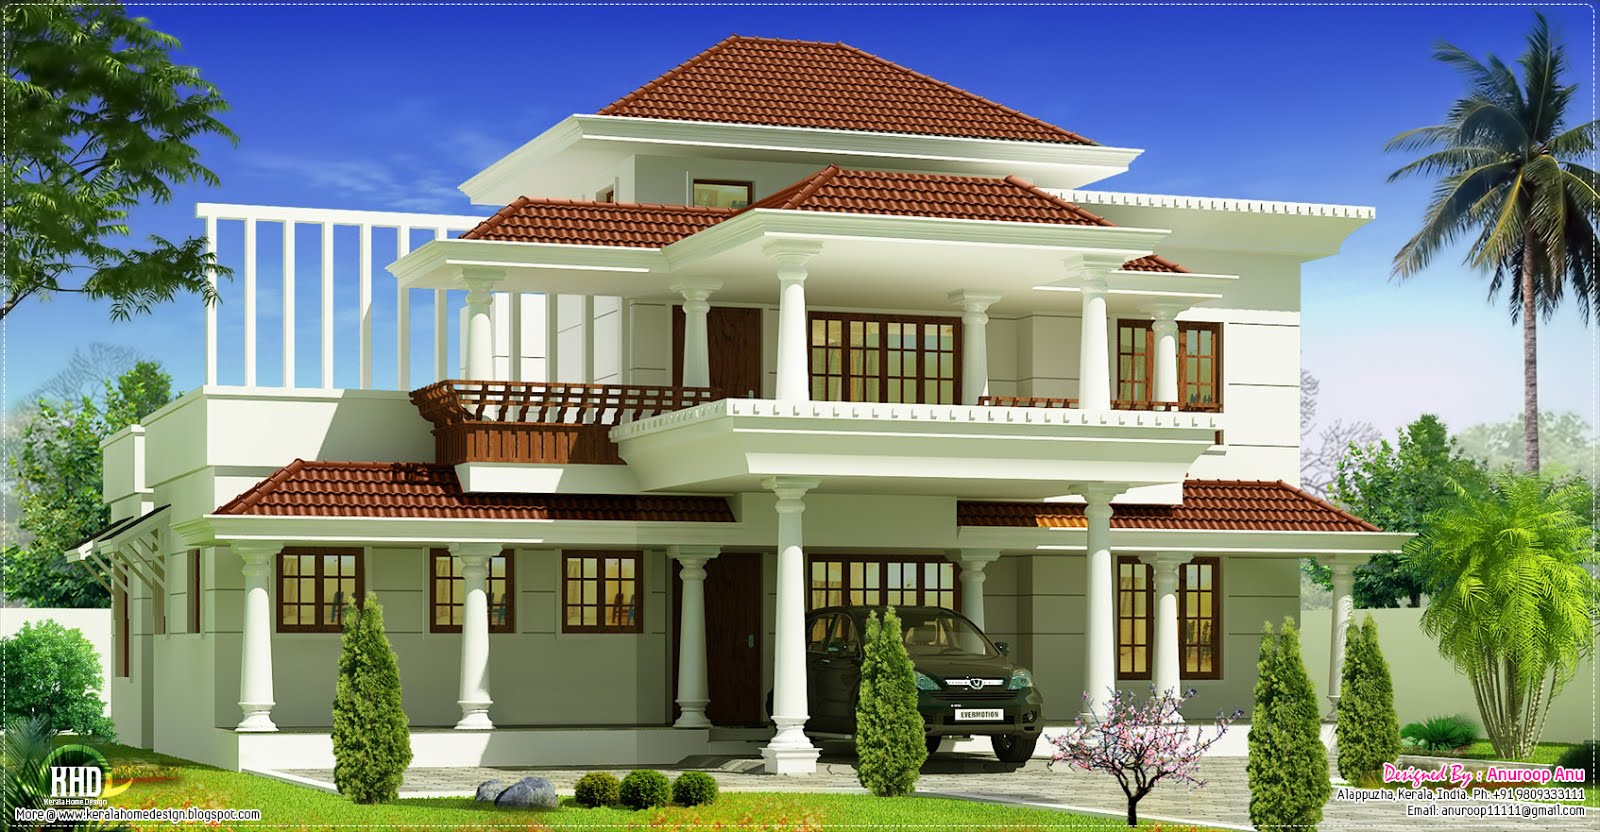 Kerala house models houses plans designs for Kerala house plans and designs